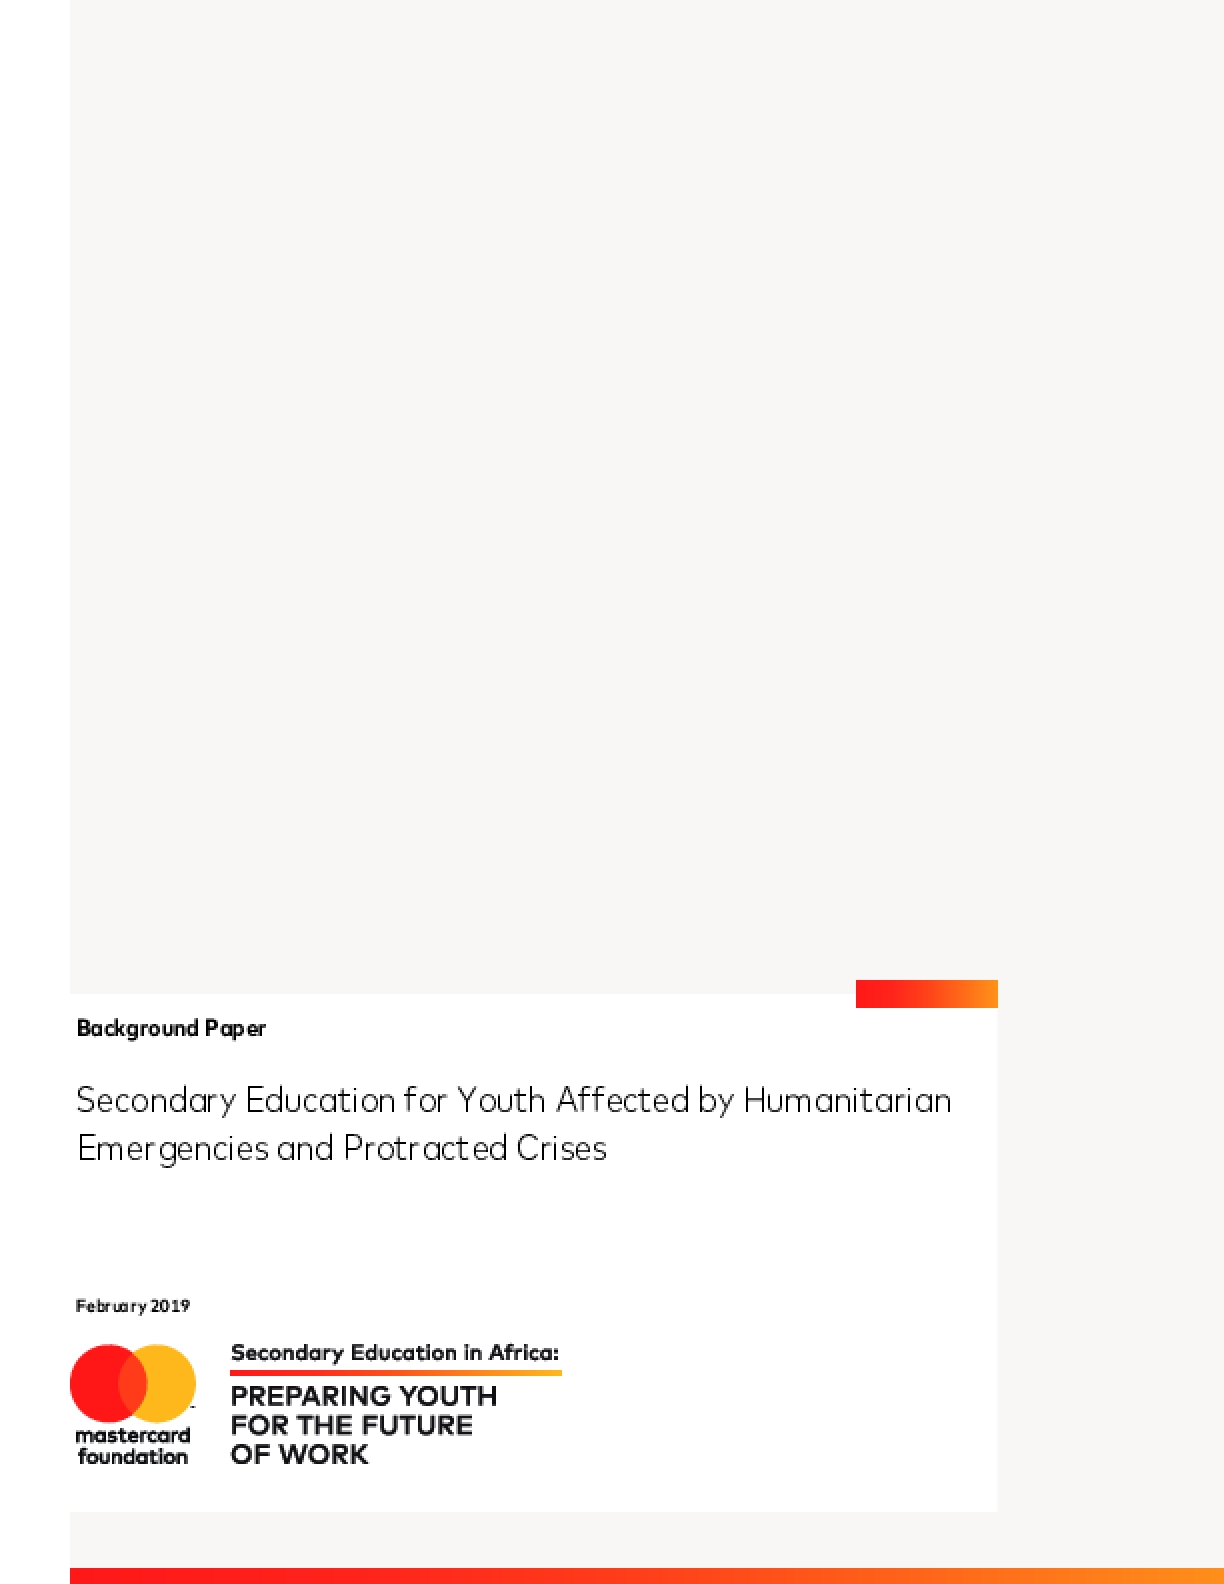 Secondary Education for Youth Affected by Humanitarian Emergencies and Protracted Crises